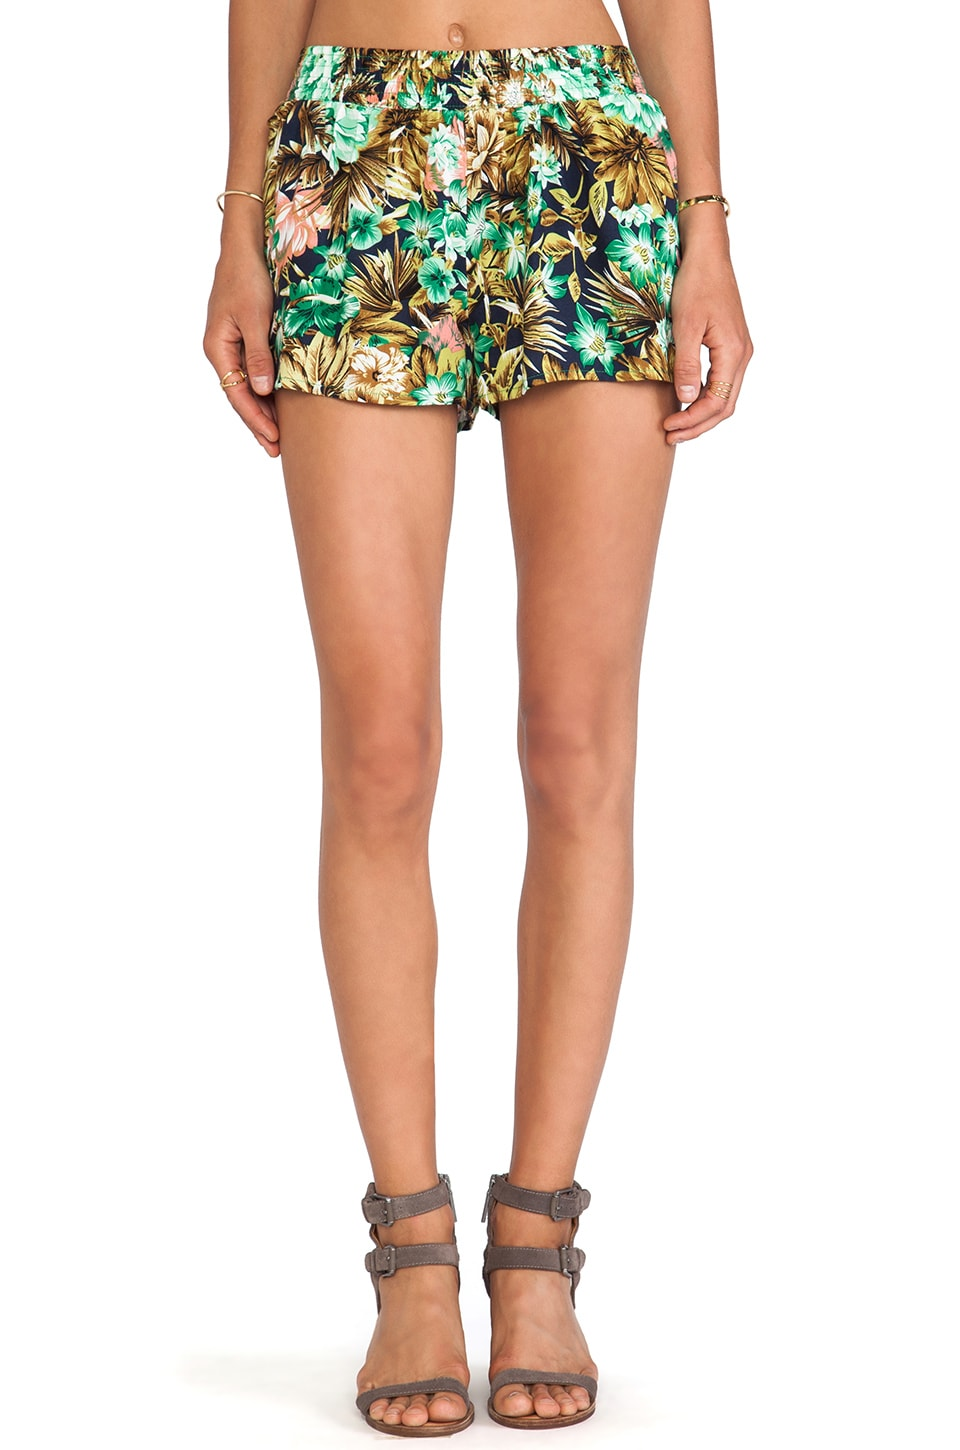 Lucca Couture Shorts in Navy Floral